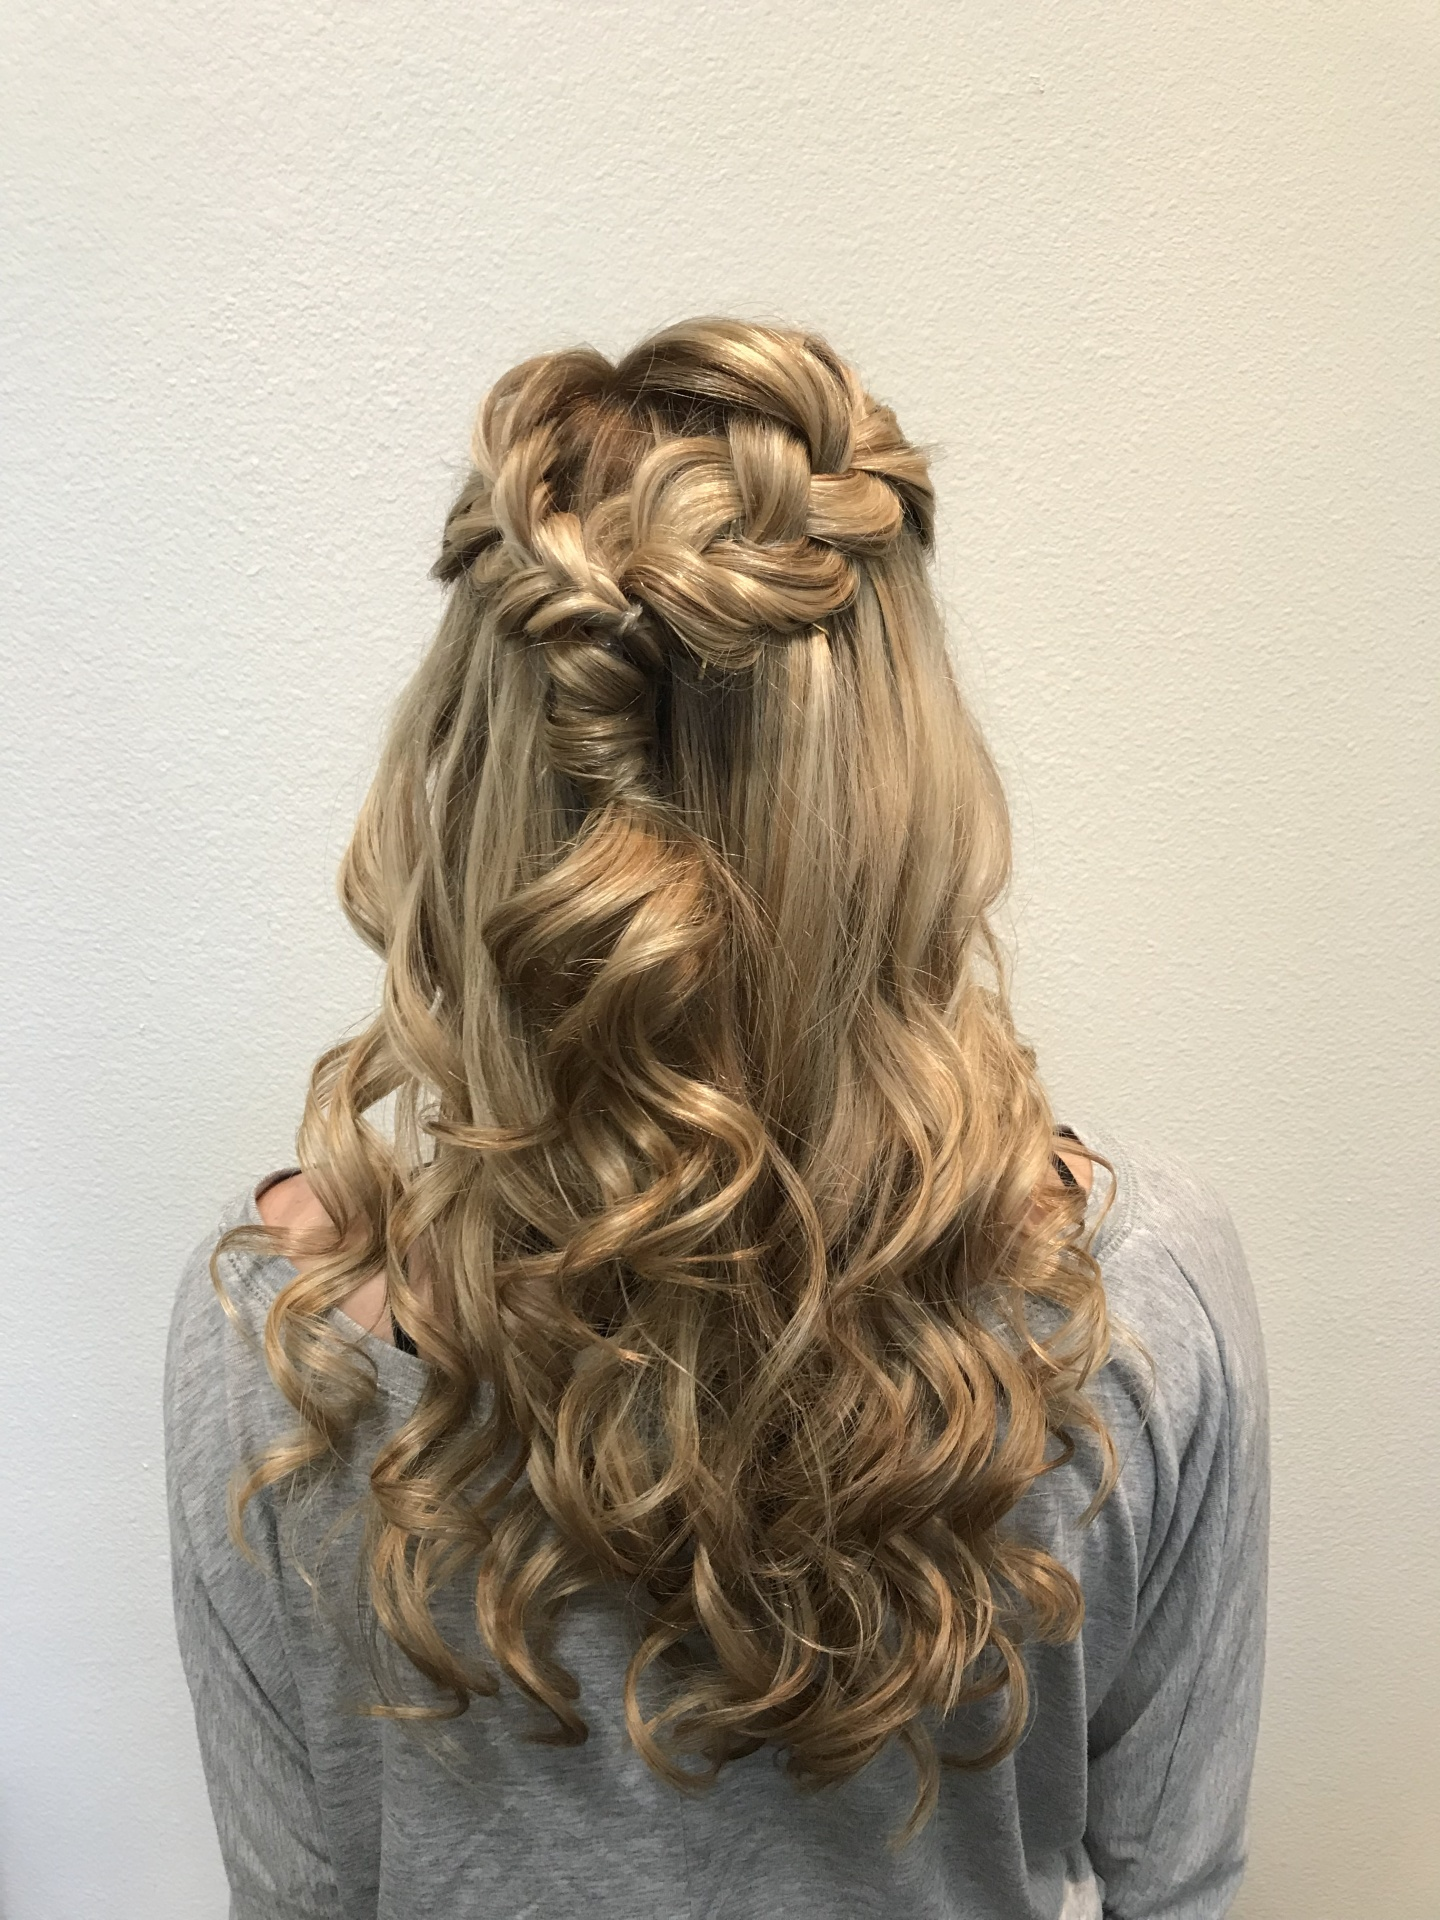 Hair, Hairstylist, 5 Star, Makeup, Makeup Artist, Weddings, Airbrushed, Prom, Senior Pictures, Balayage, Salons of Volterra, Luxury Salon, 76182, 76180, 76092, 76244, 76148, 76054, 76248, near me, Haircuts, Trendy Haircuts, Keller, Fort Worth, Arlington, Euless, Bedford, Hurst, North Richland Hills, Grapevine, Colleyville, Southlake, Roanoke, Westlake, Hurst, Men's Haircuts, Women's Haircuts, Teenager's Haircuts, Online, Salons, Best Salons, Spa, Special occasions, DFW, Highlights, Perms, Brazilian Blow-dry, Keratin Treatments, Experienced Hairstylist, waxing, Photo Shoots, Photography, Bridal Portraits